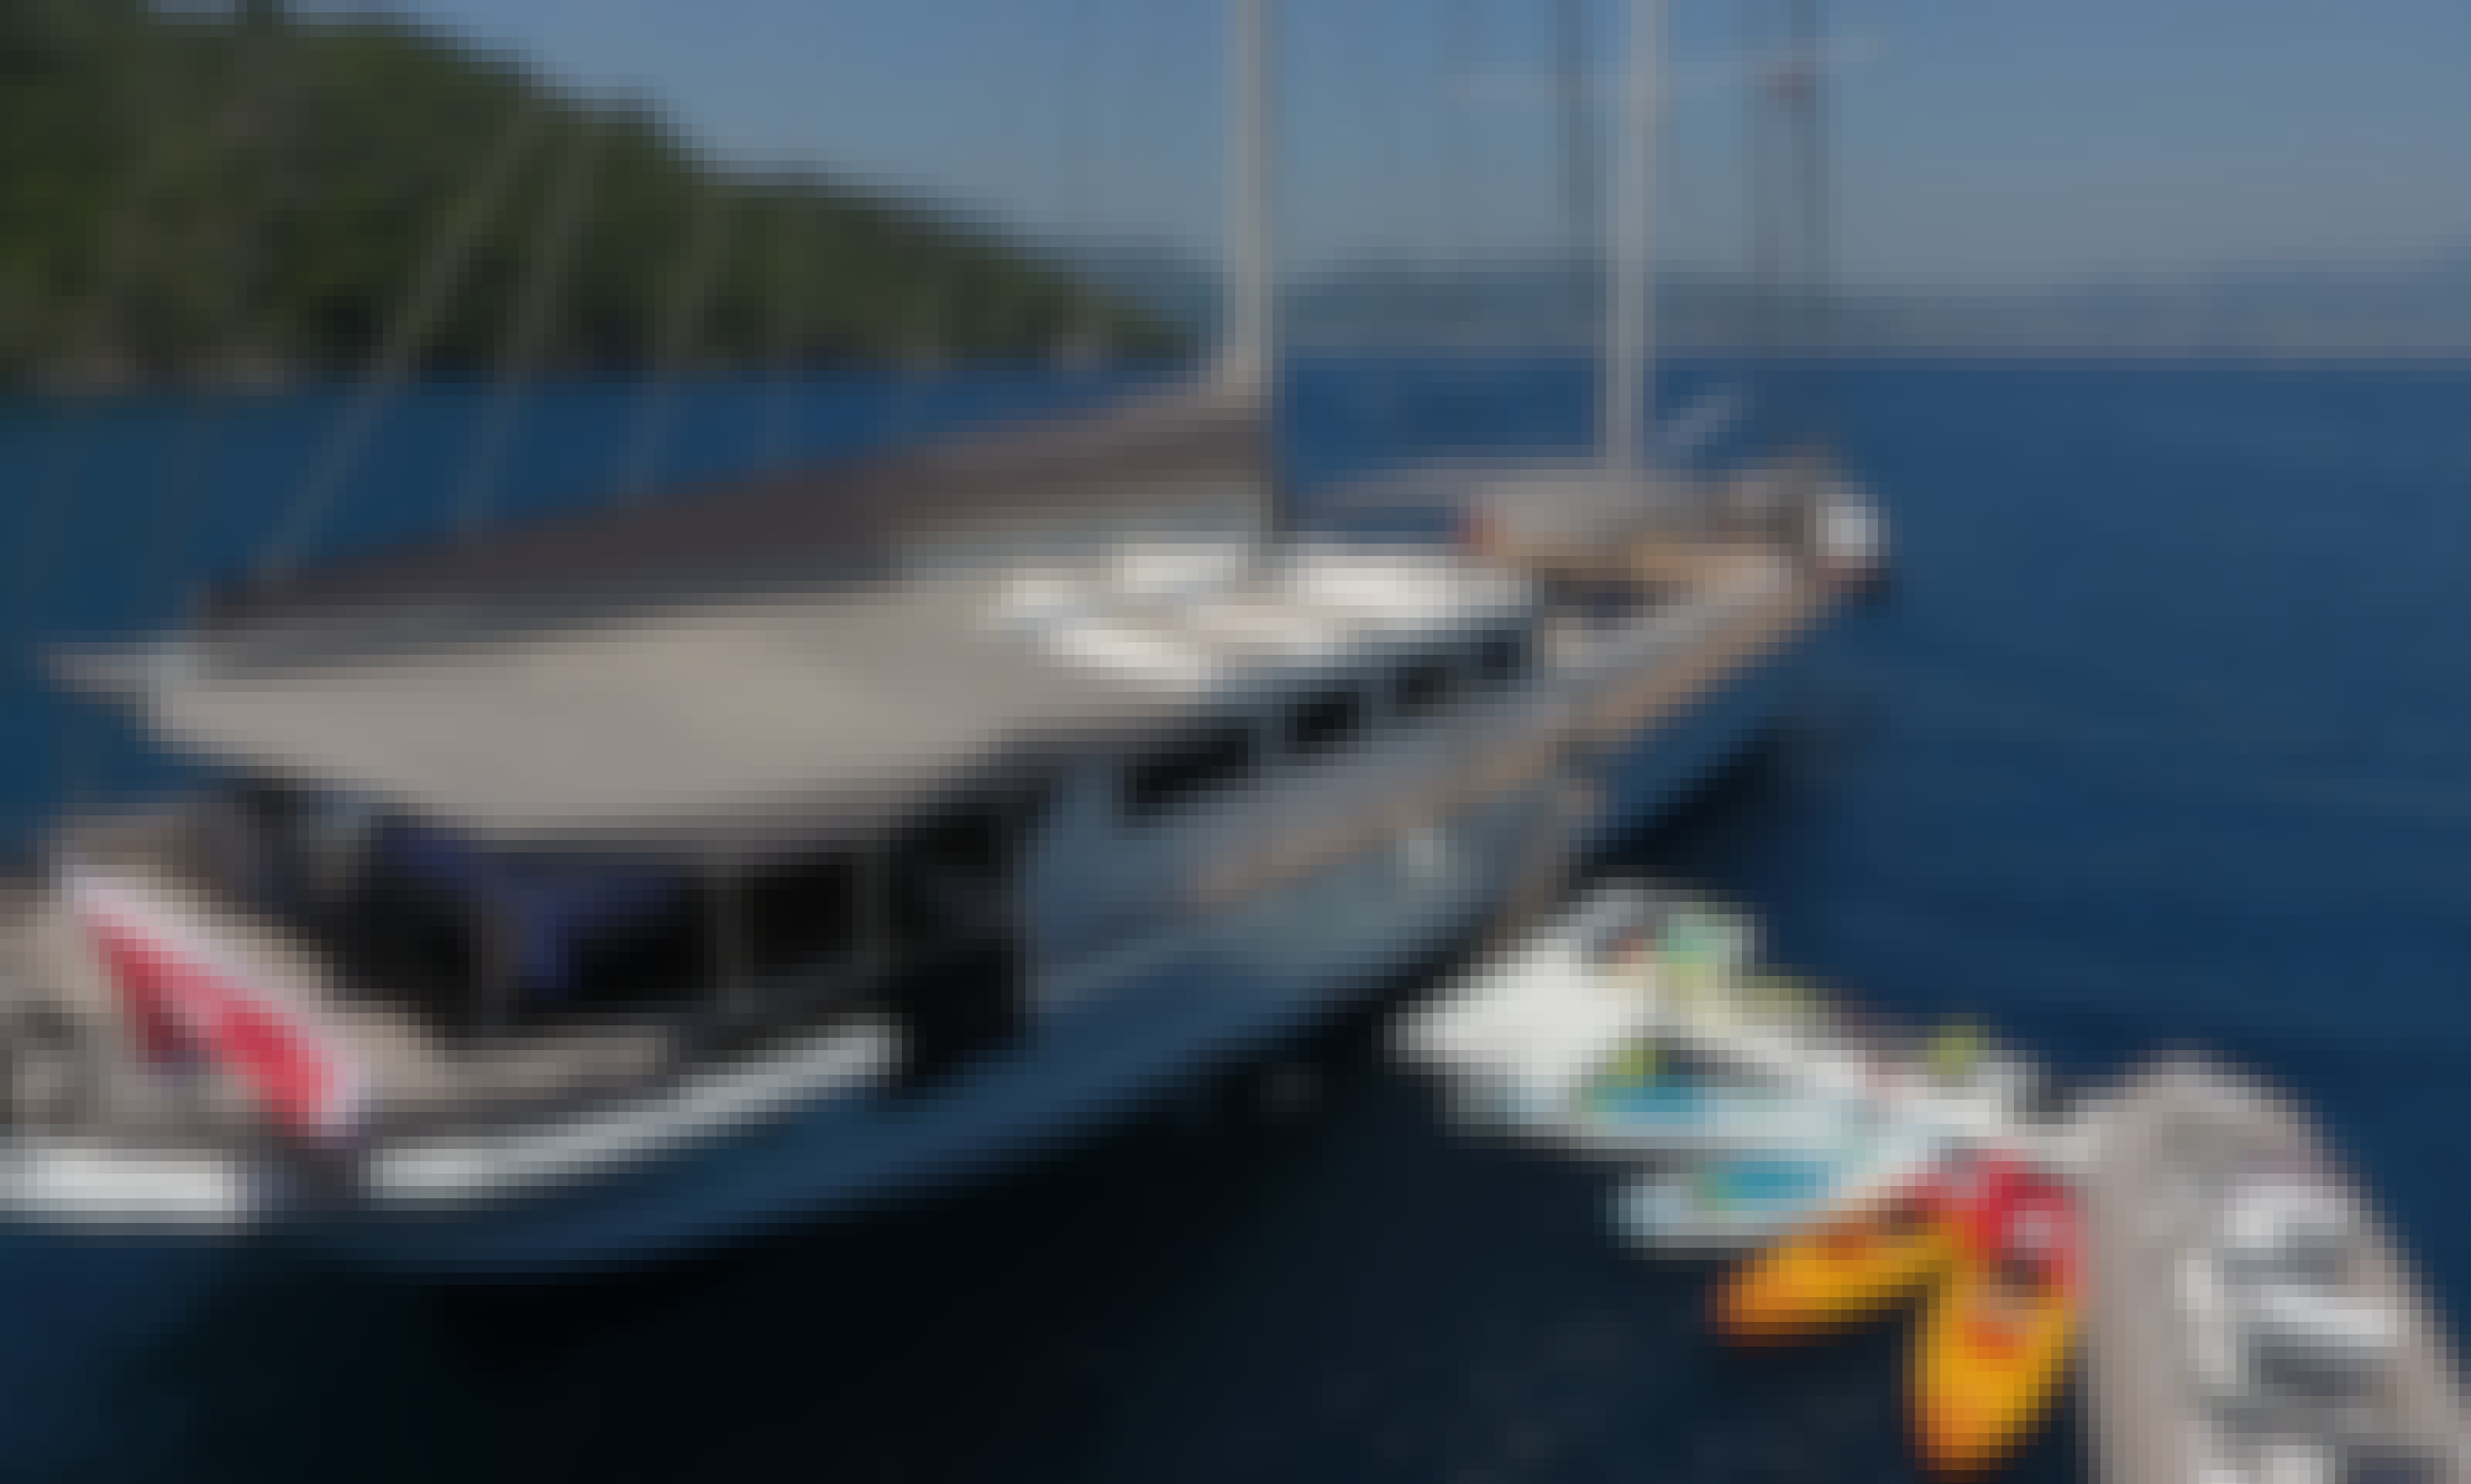 Charter this 124' Sailing Gulet with Luxury Full Equipment in Marmaris - Sterilized Boat with Health Check Crew